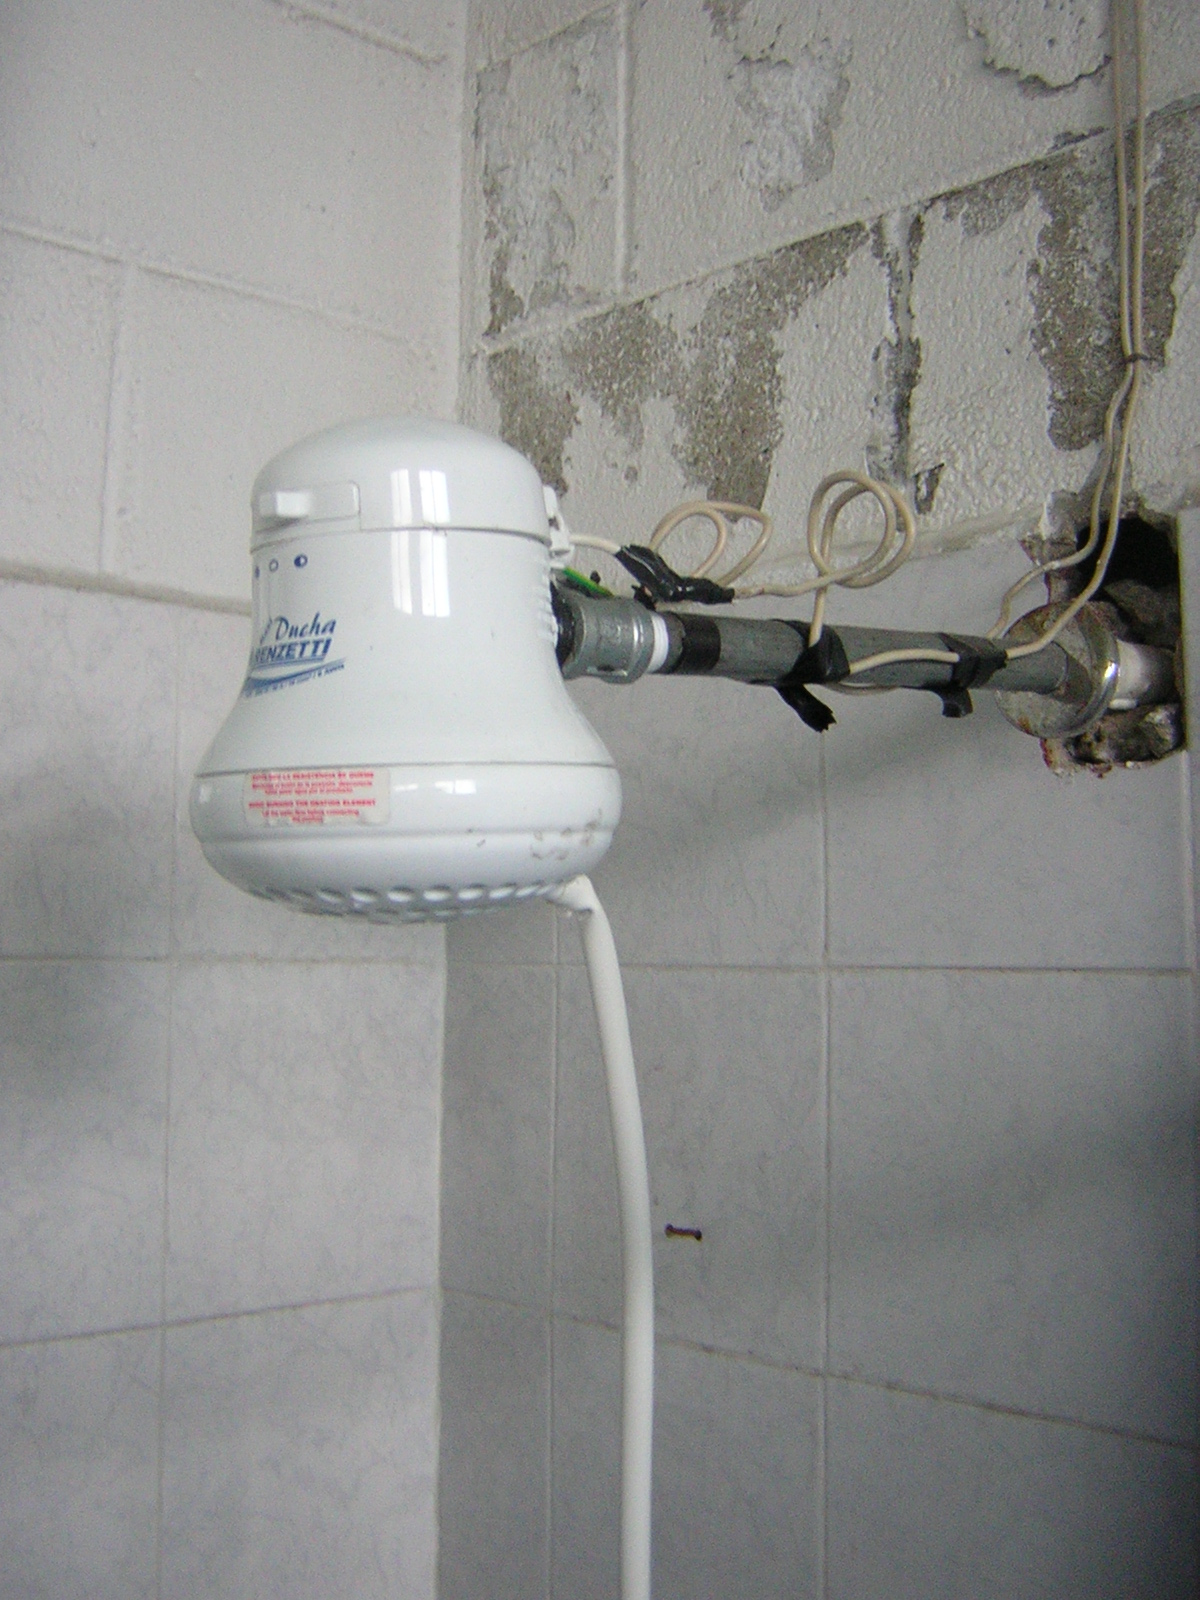 file showers in guatemala jpg wikimedia commons